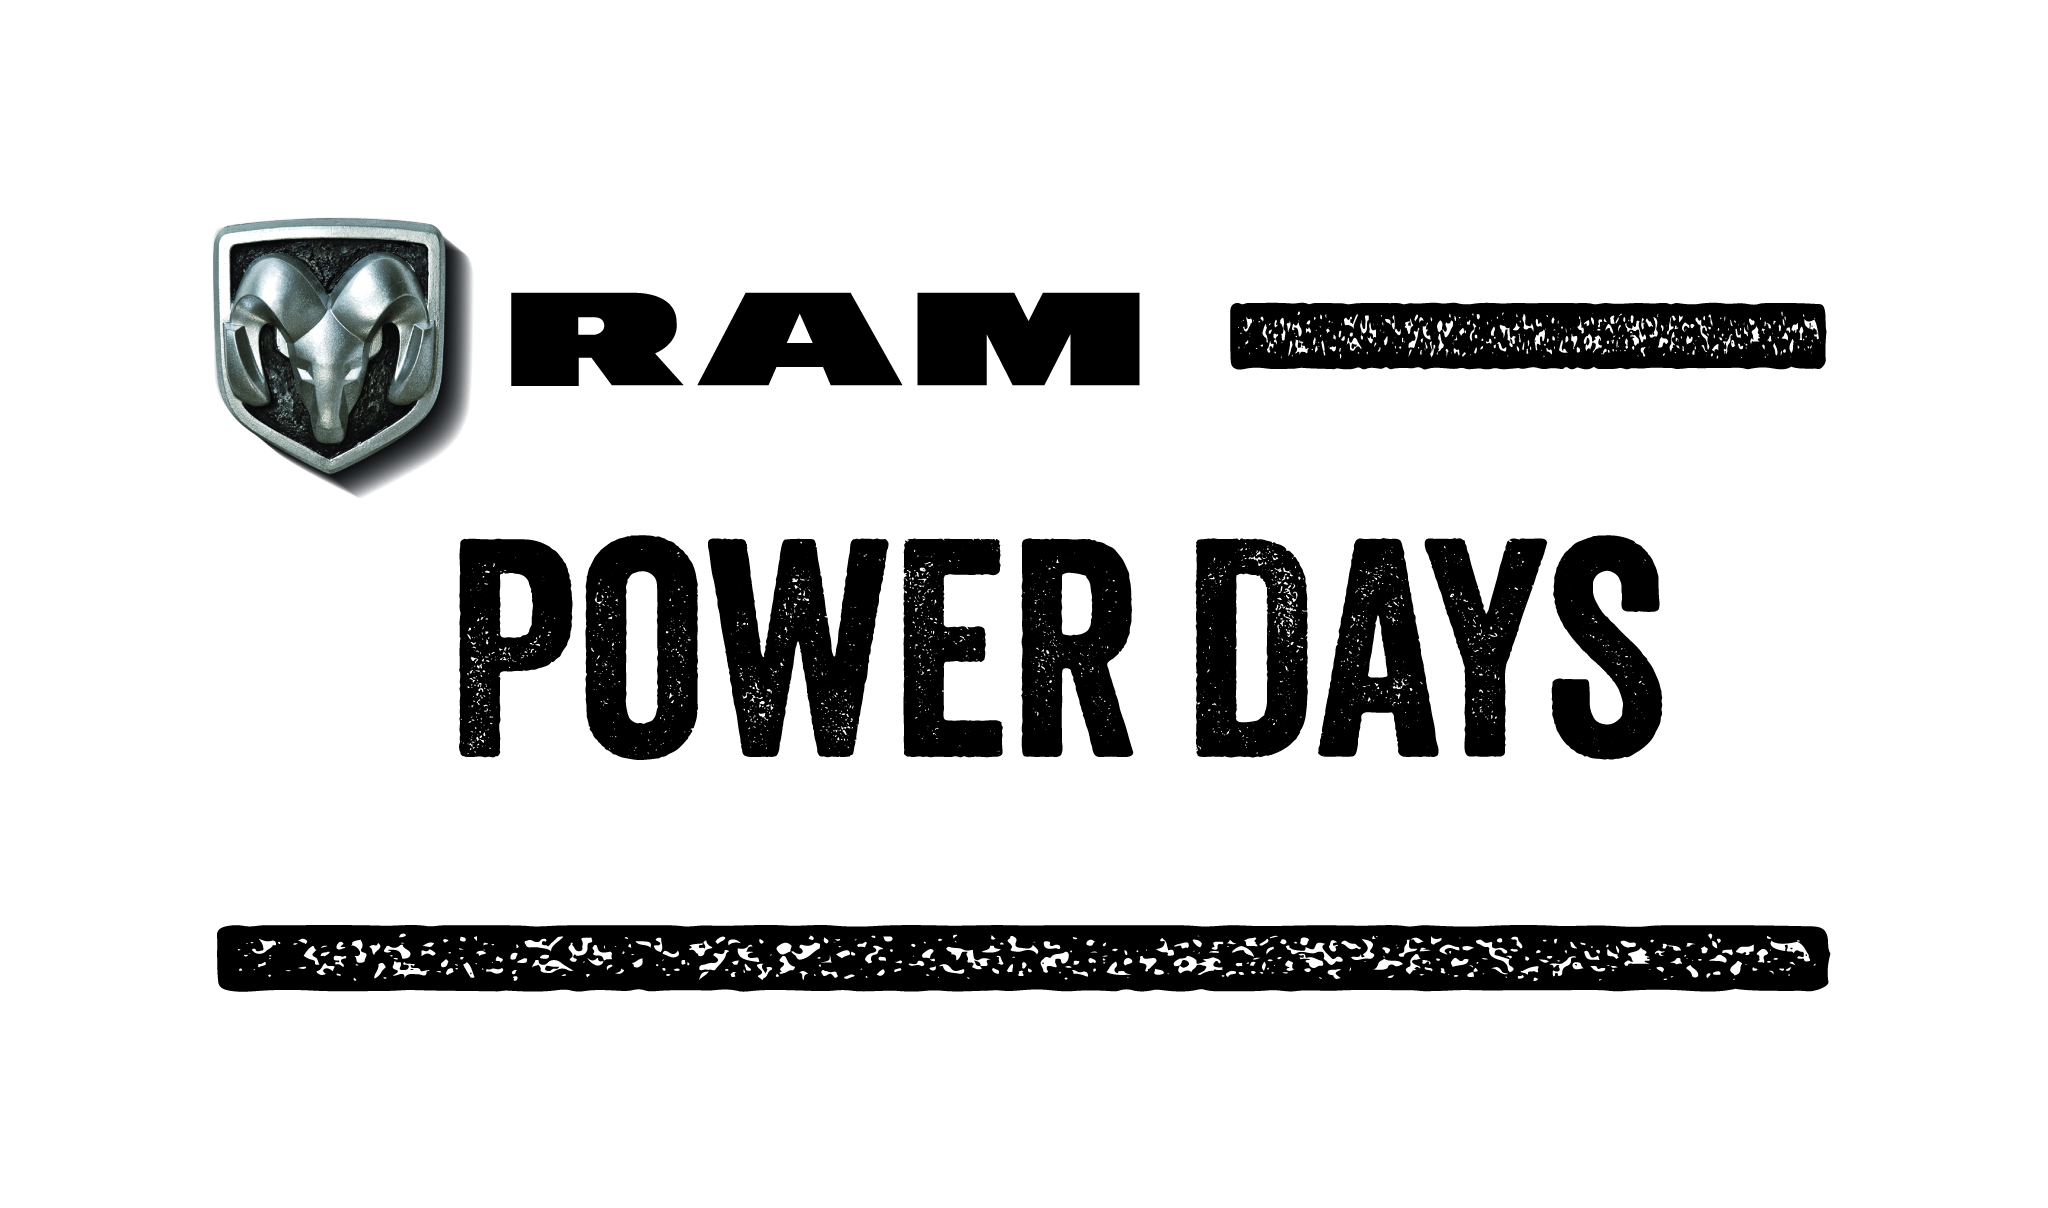 Ram Power Days in Monticello, IN